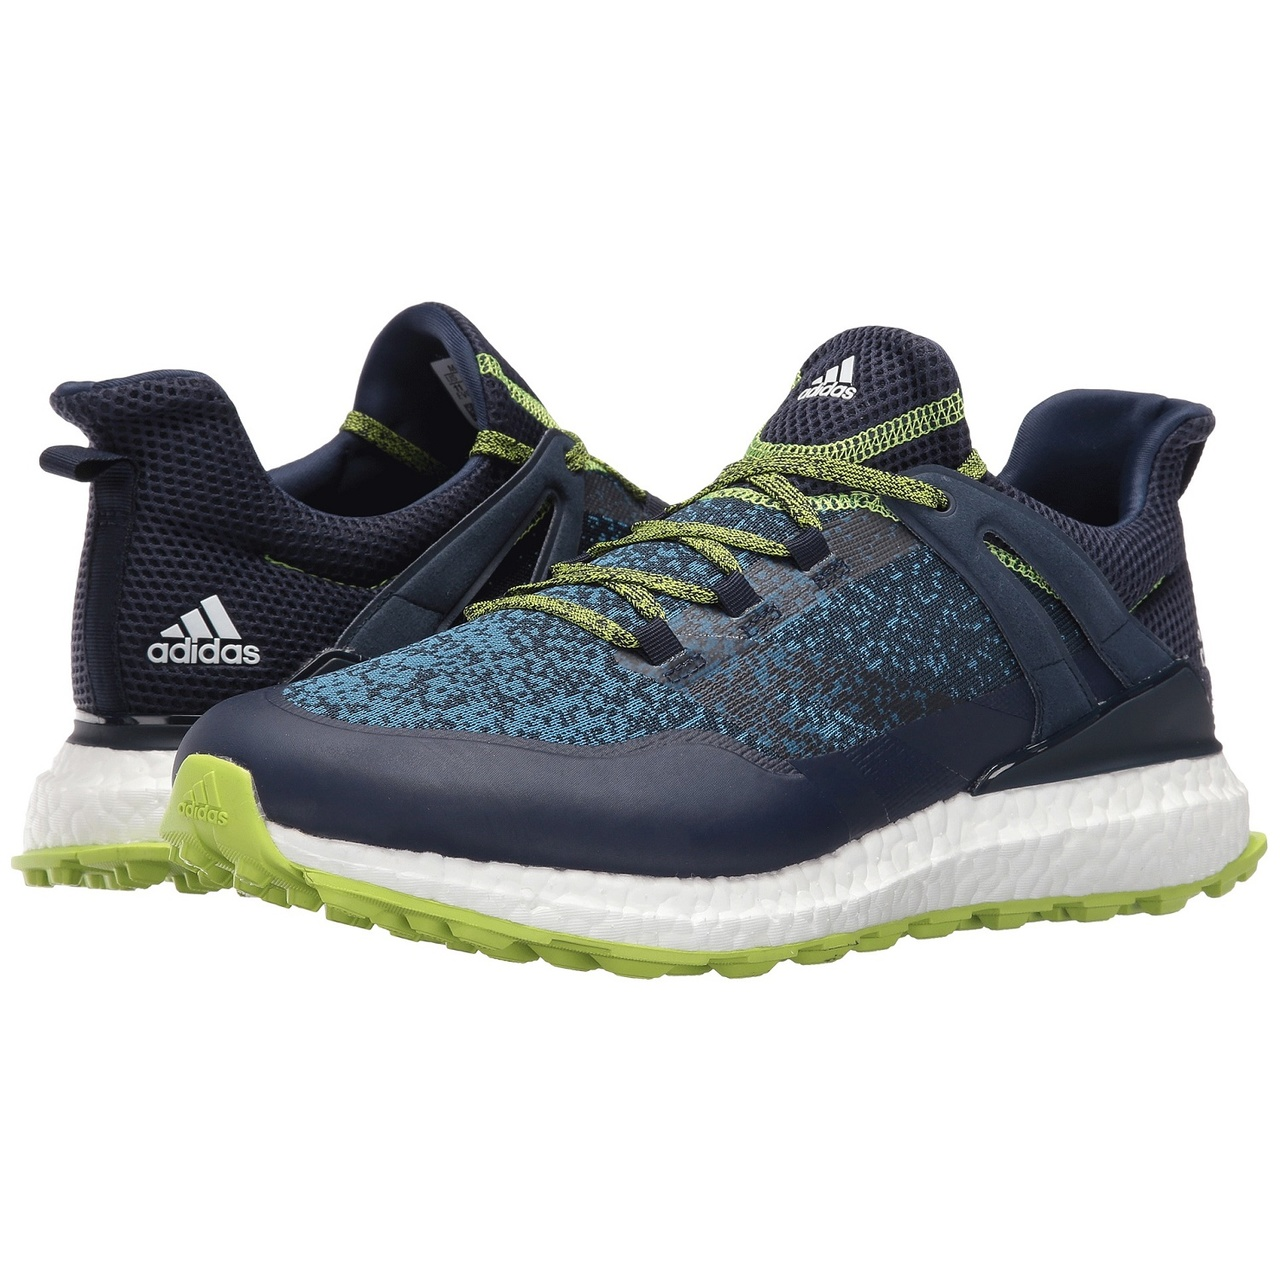 new arrival 5a5fb 74be1 adidas Crossknit Boost Mens Spikeless Golf Shoes - Collegiate NavySolar  SlimeWhite